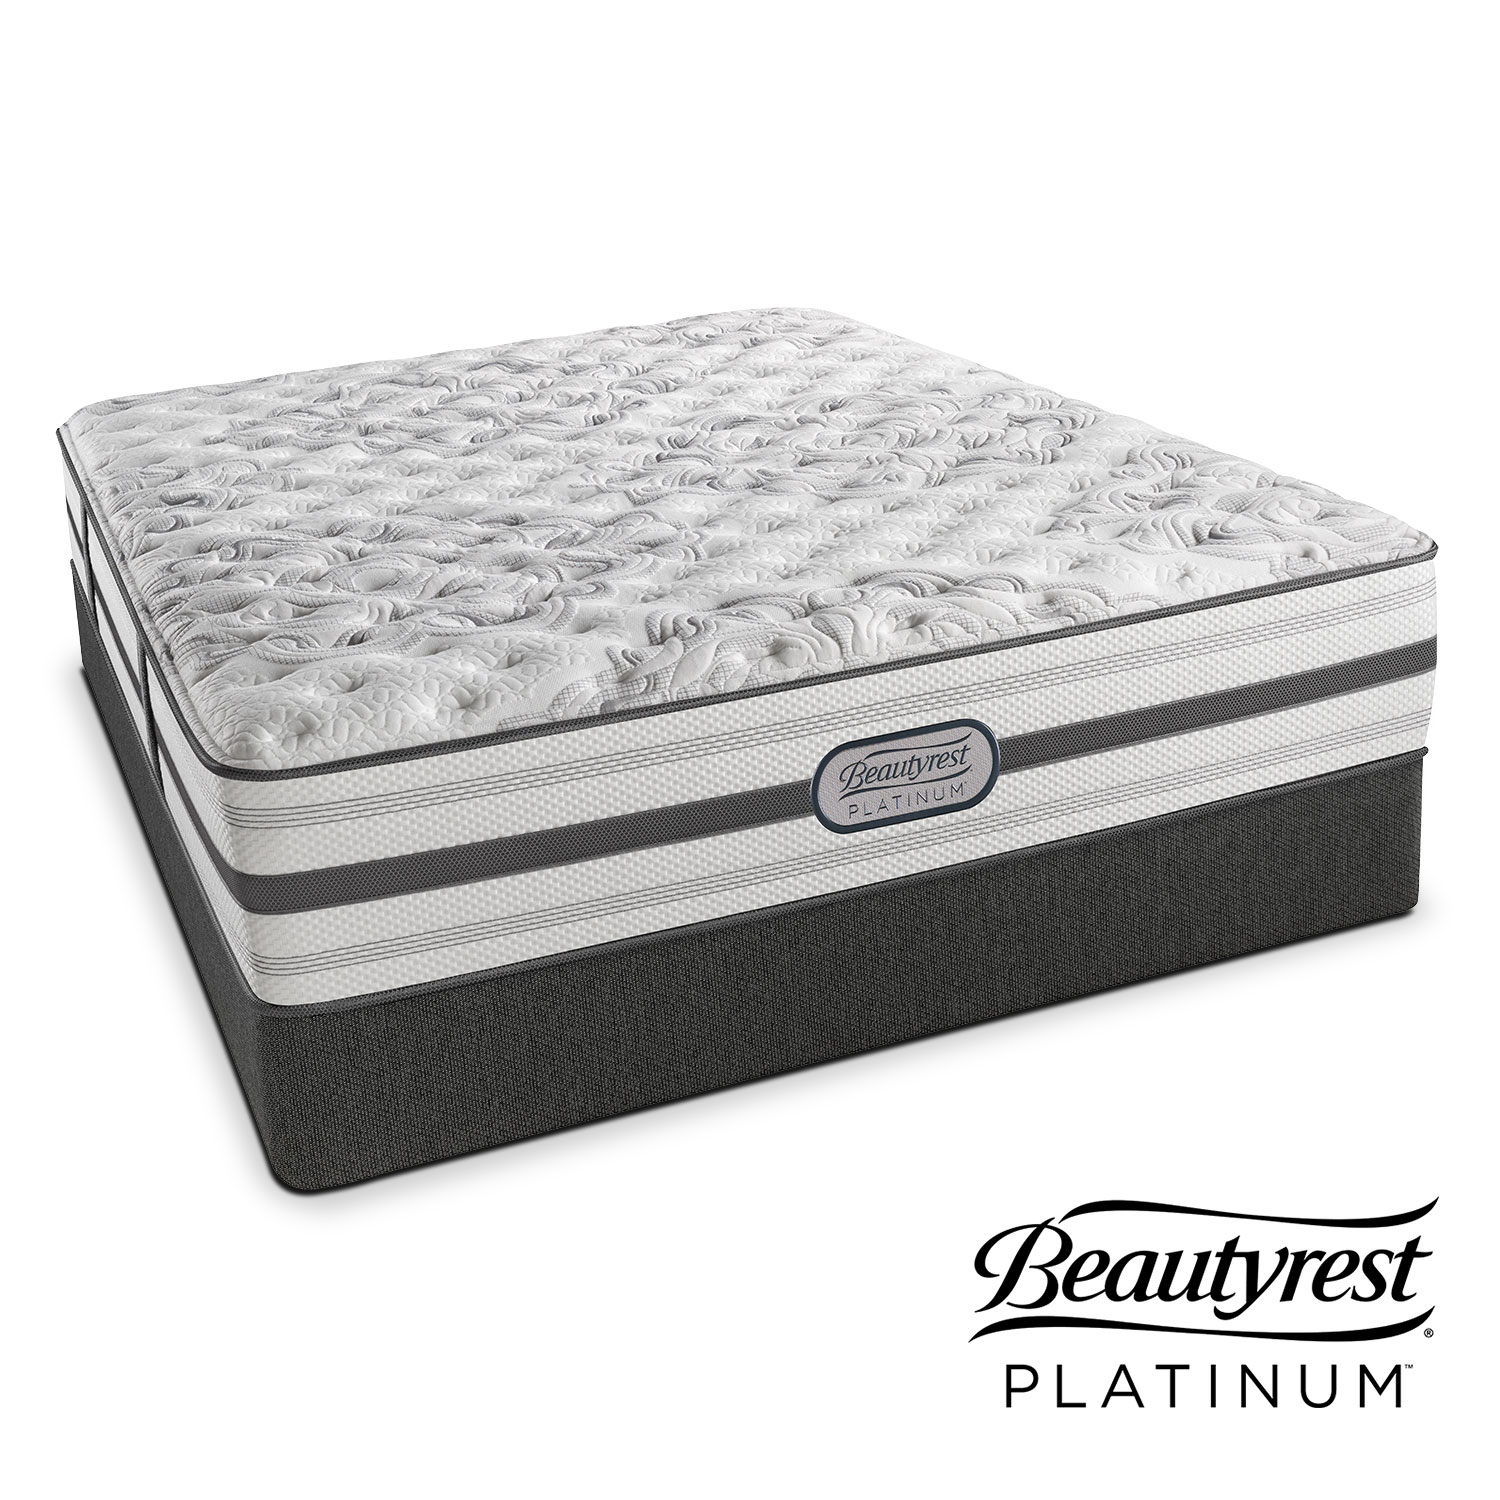 Mattresses and Bedding - Helena Queen Mattress/Split Foundation Set